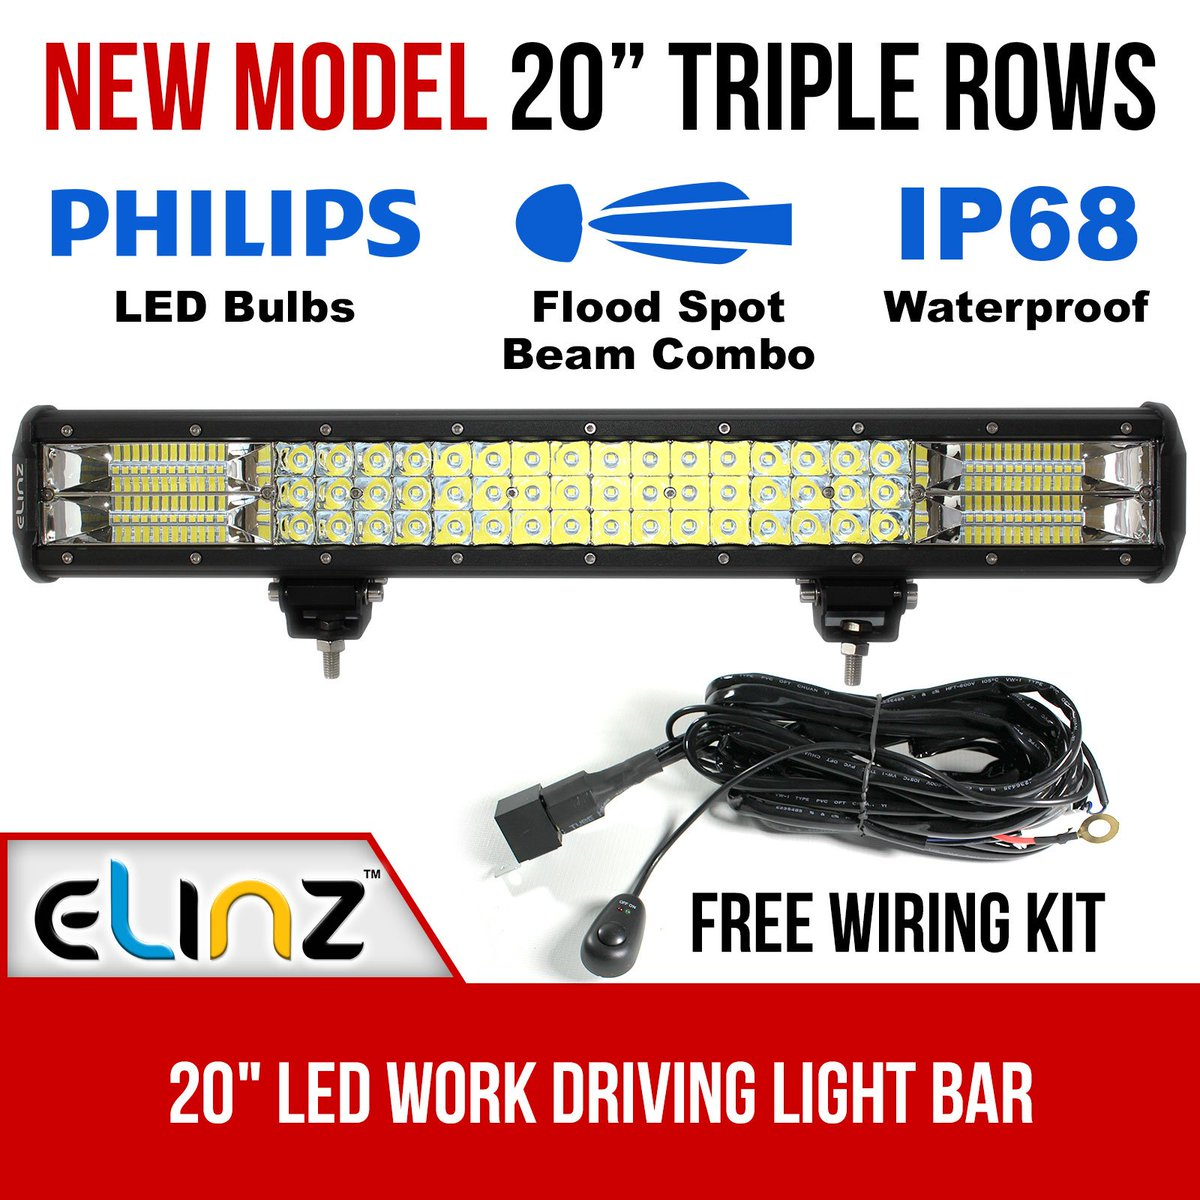 New 3 rows elinz led light bars your perfect companion in night driving and offroad adventures http ow ly 4zxz30ezorj elinzl ledlightbar